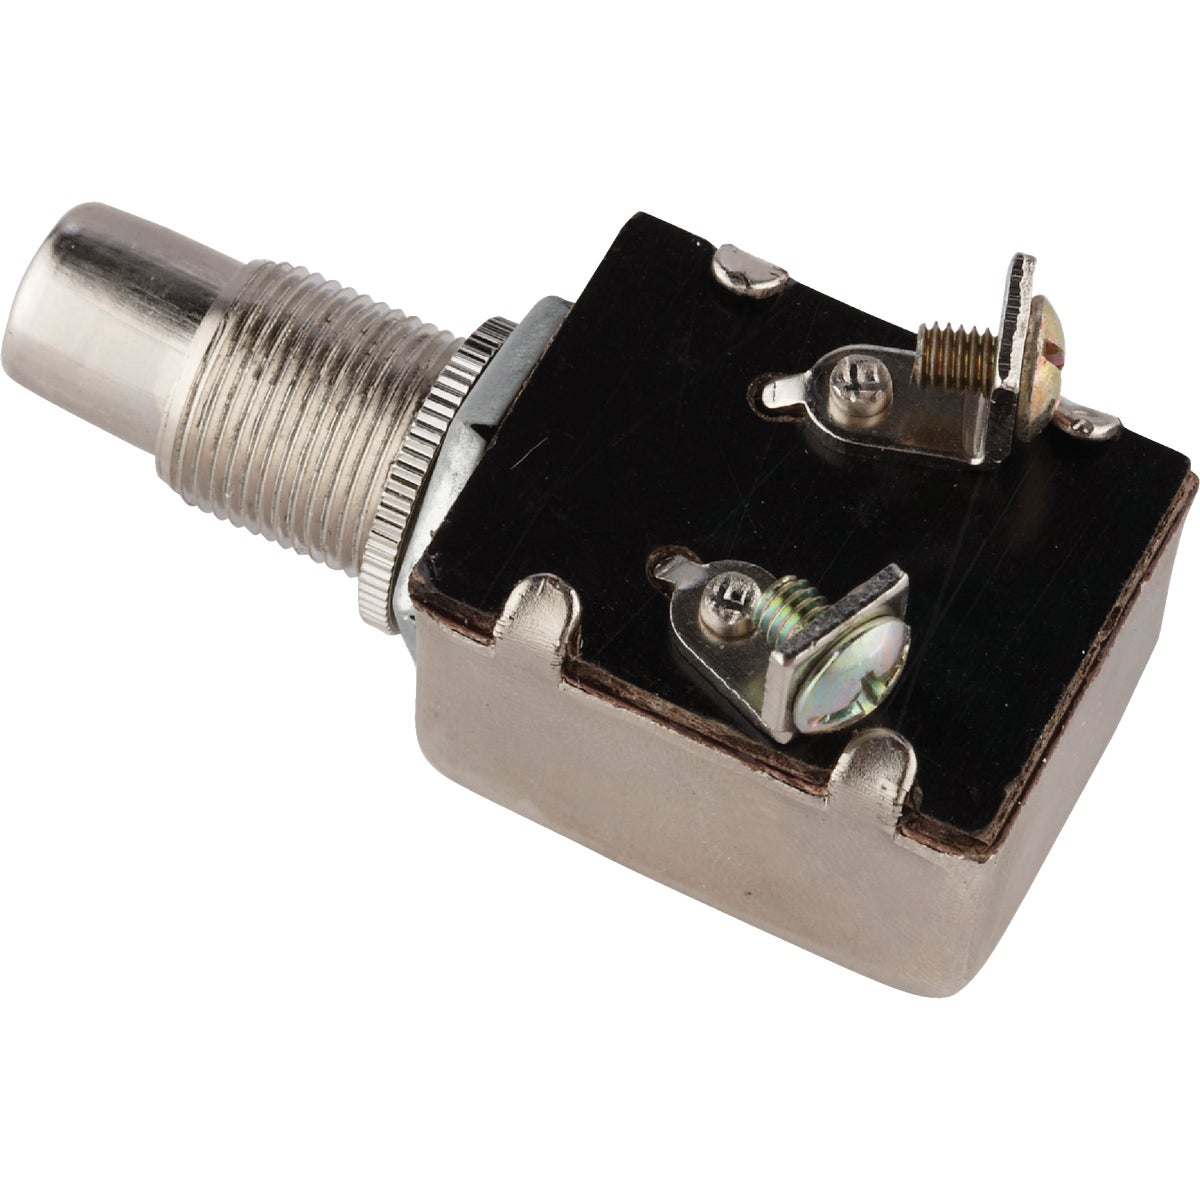 UNIVERSAL STARTER SWITCH - 42210 by G B Electrical Inc